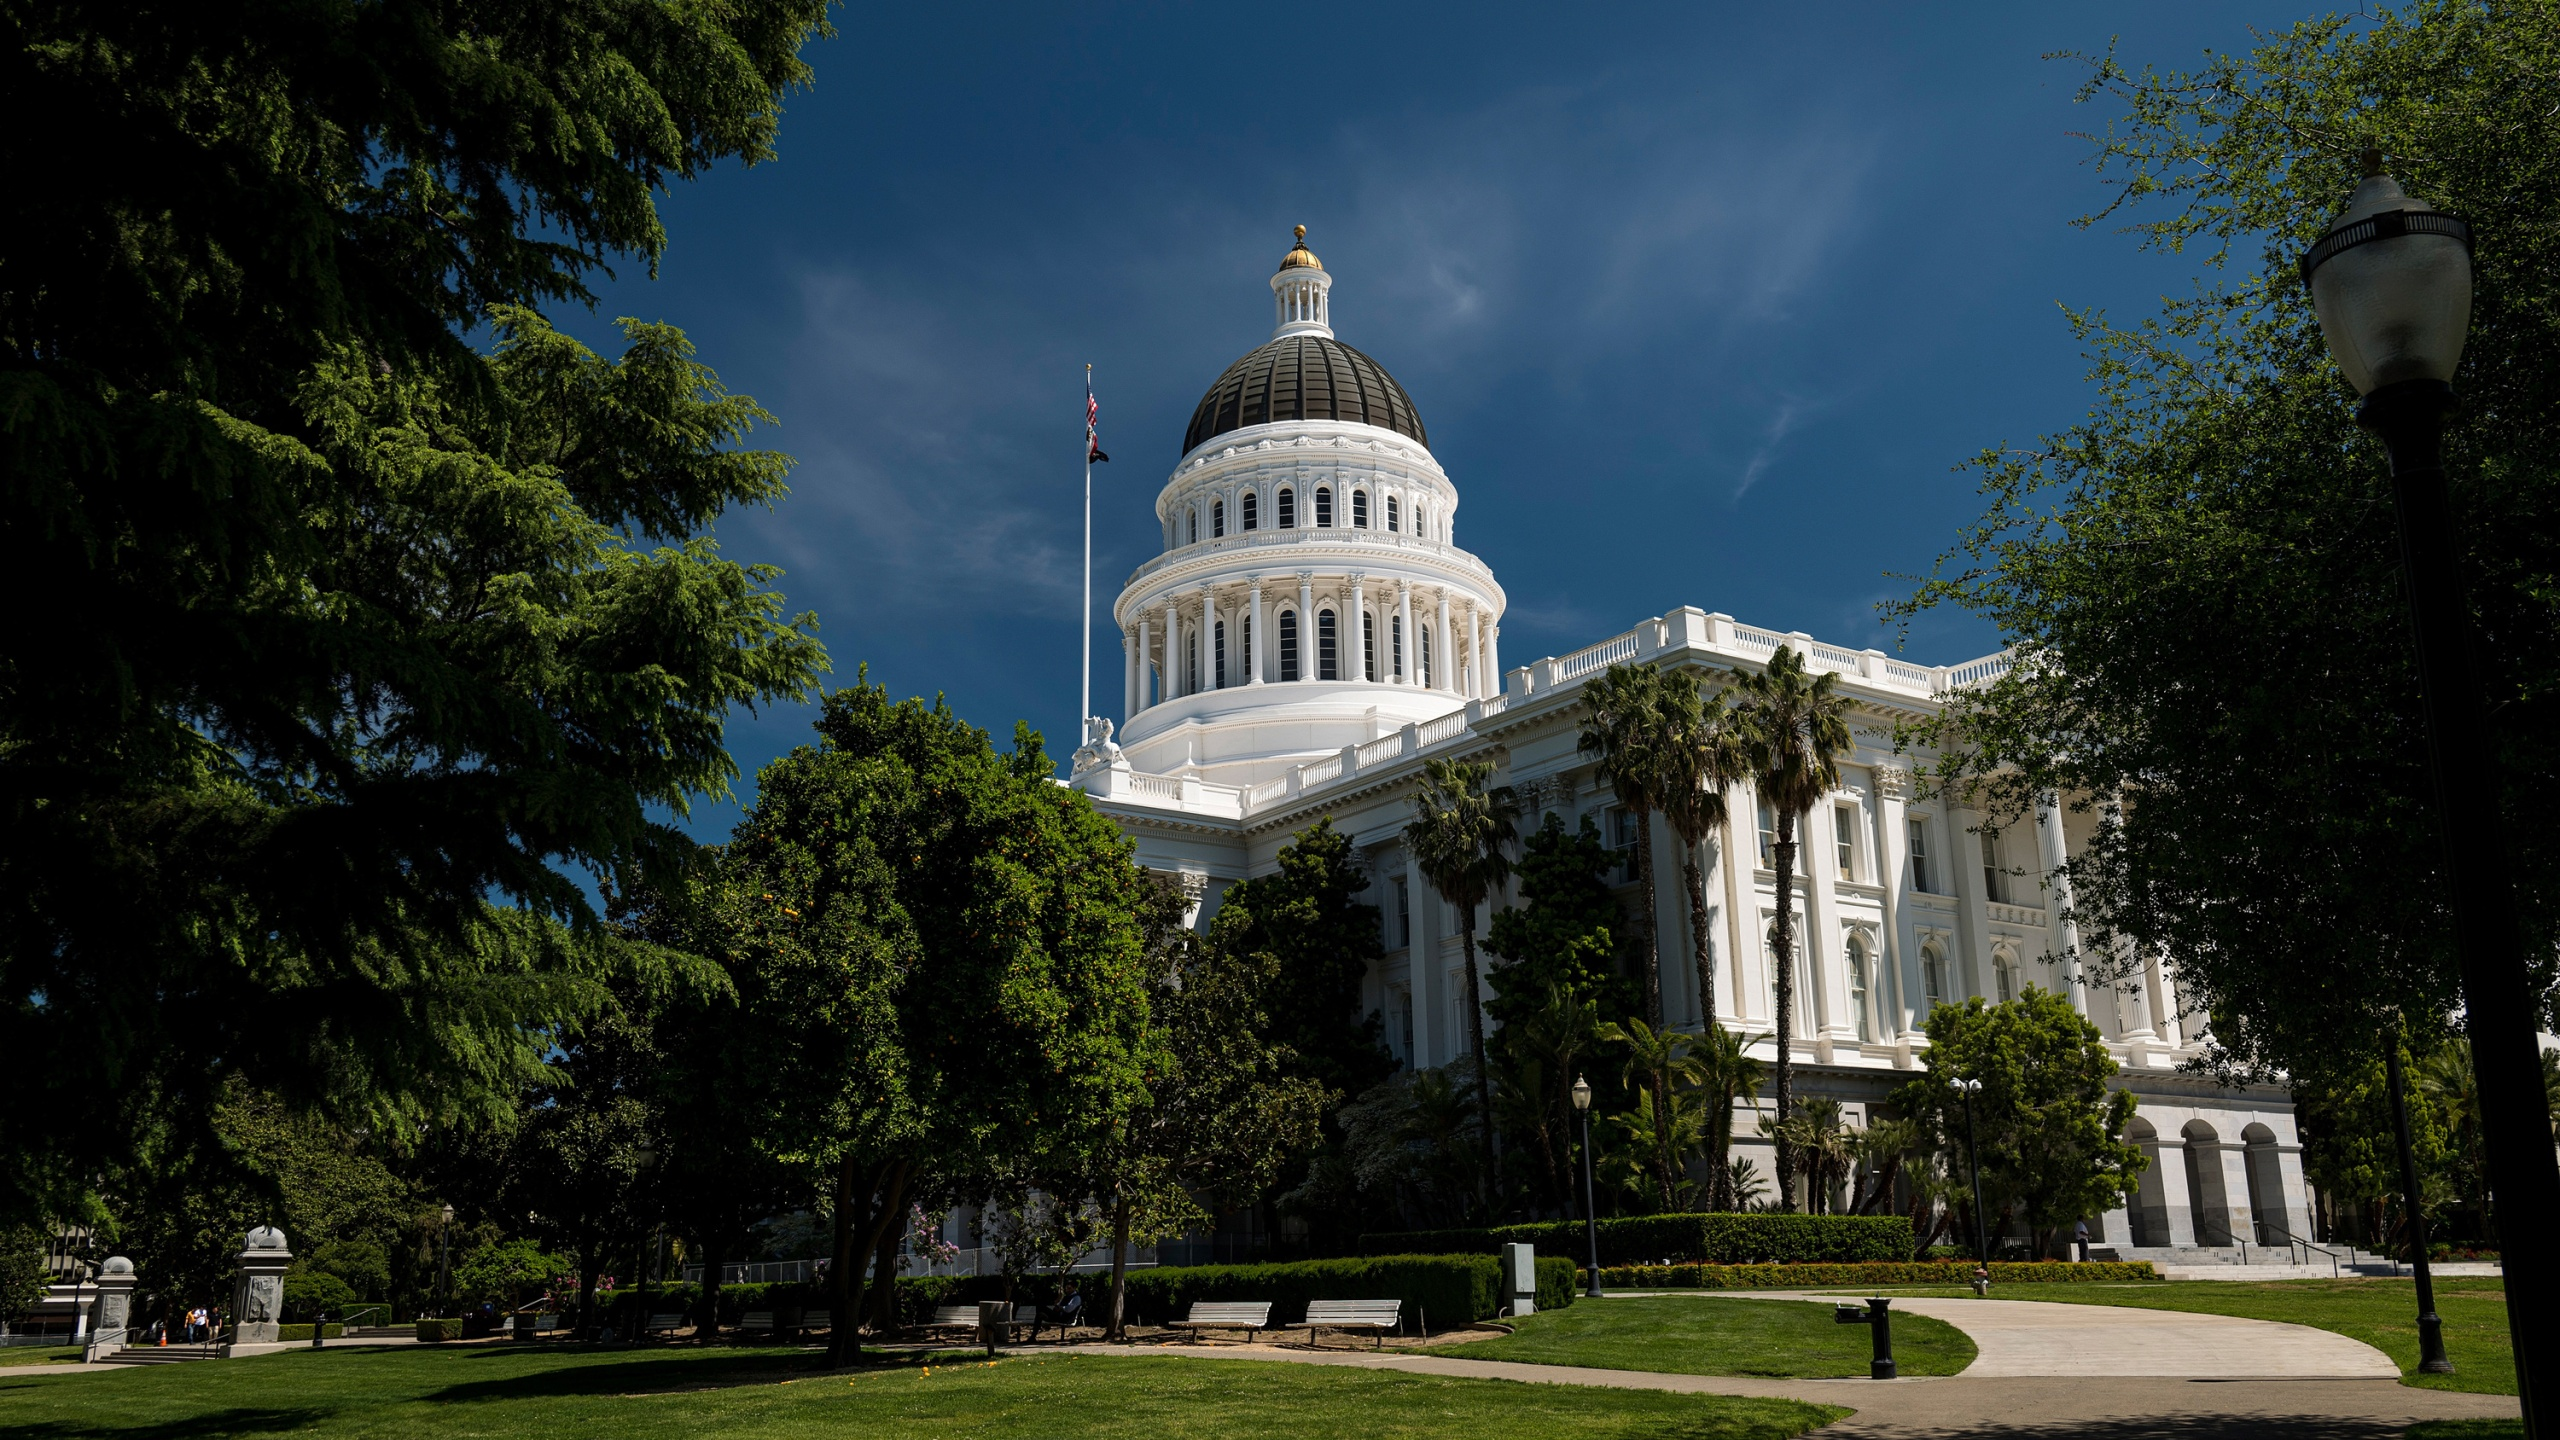 The California State Capital building stands in Sacramento, California on Tuesday, April 14, 2020. (David Paul Morris/Bloomberg via Getty Images)